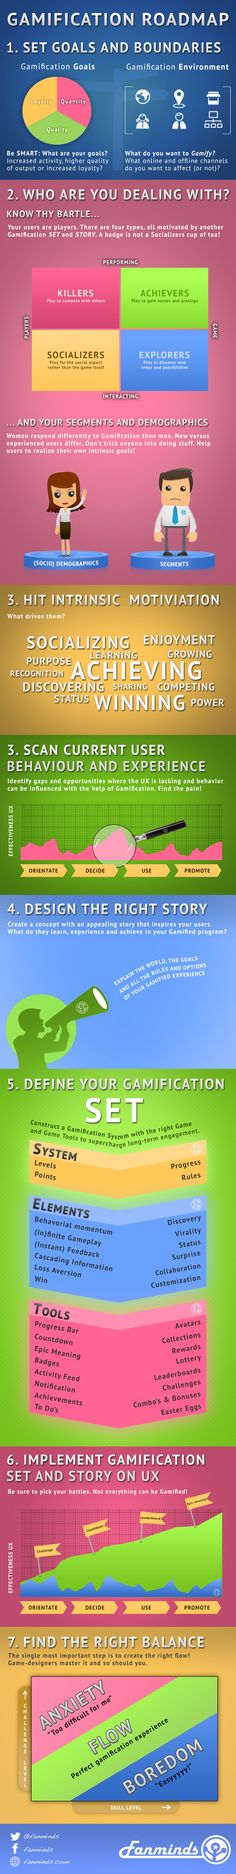 Gamification Infographic for the Fanminds Gamification Roadmap Model